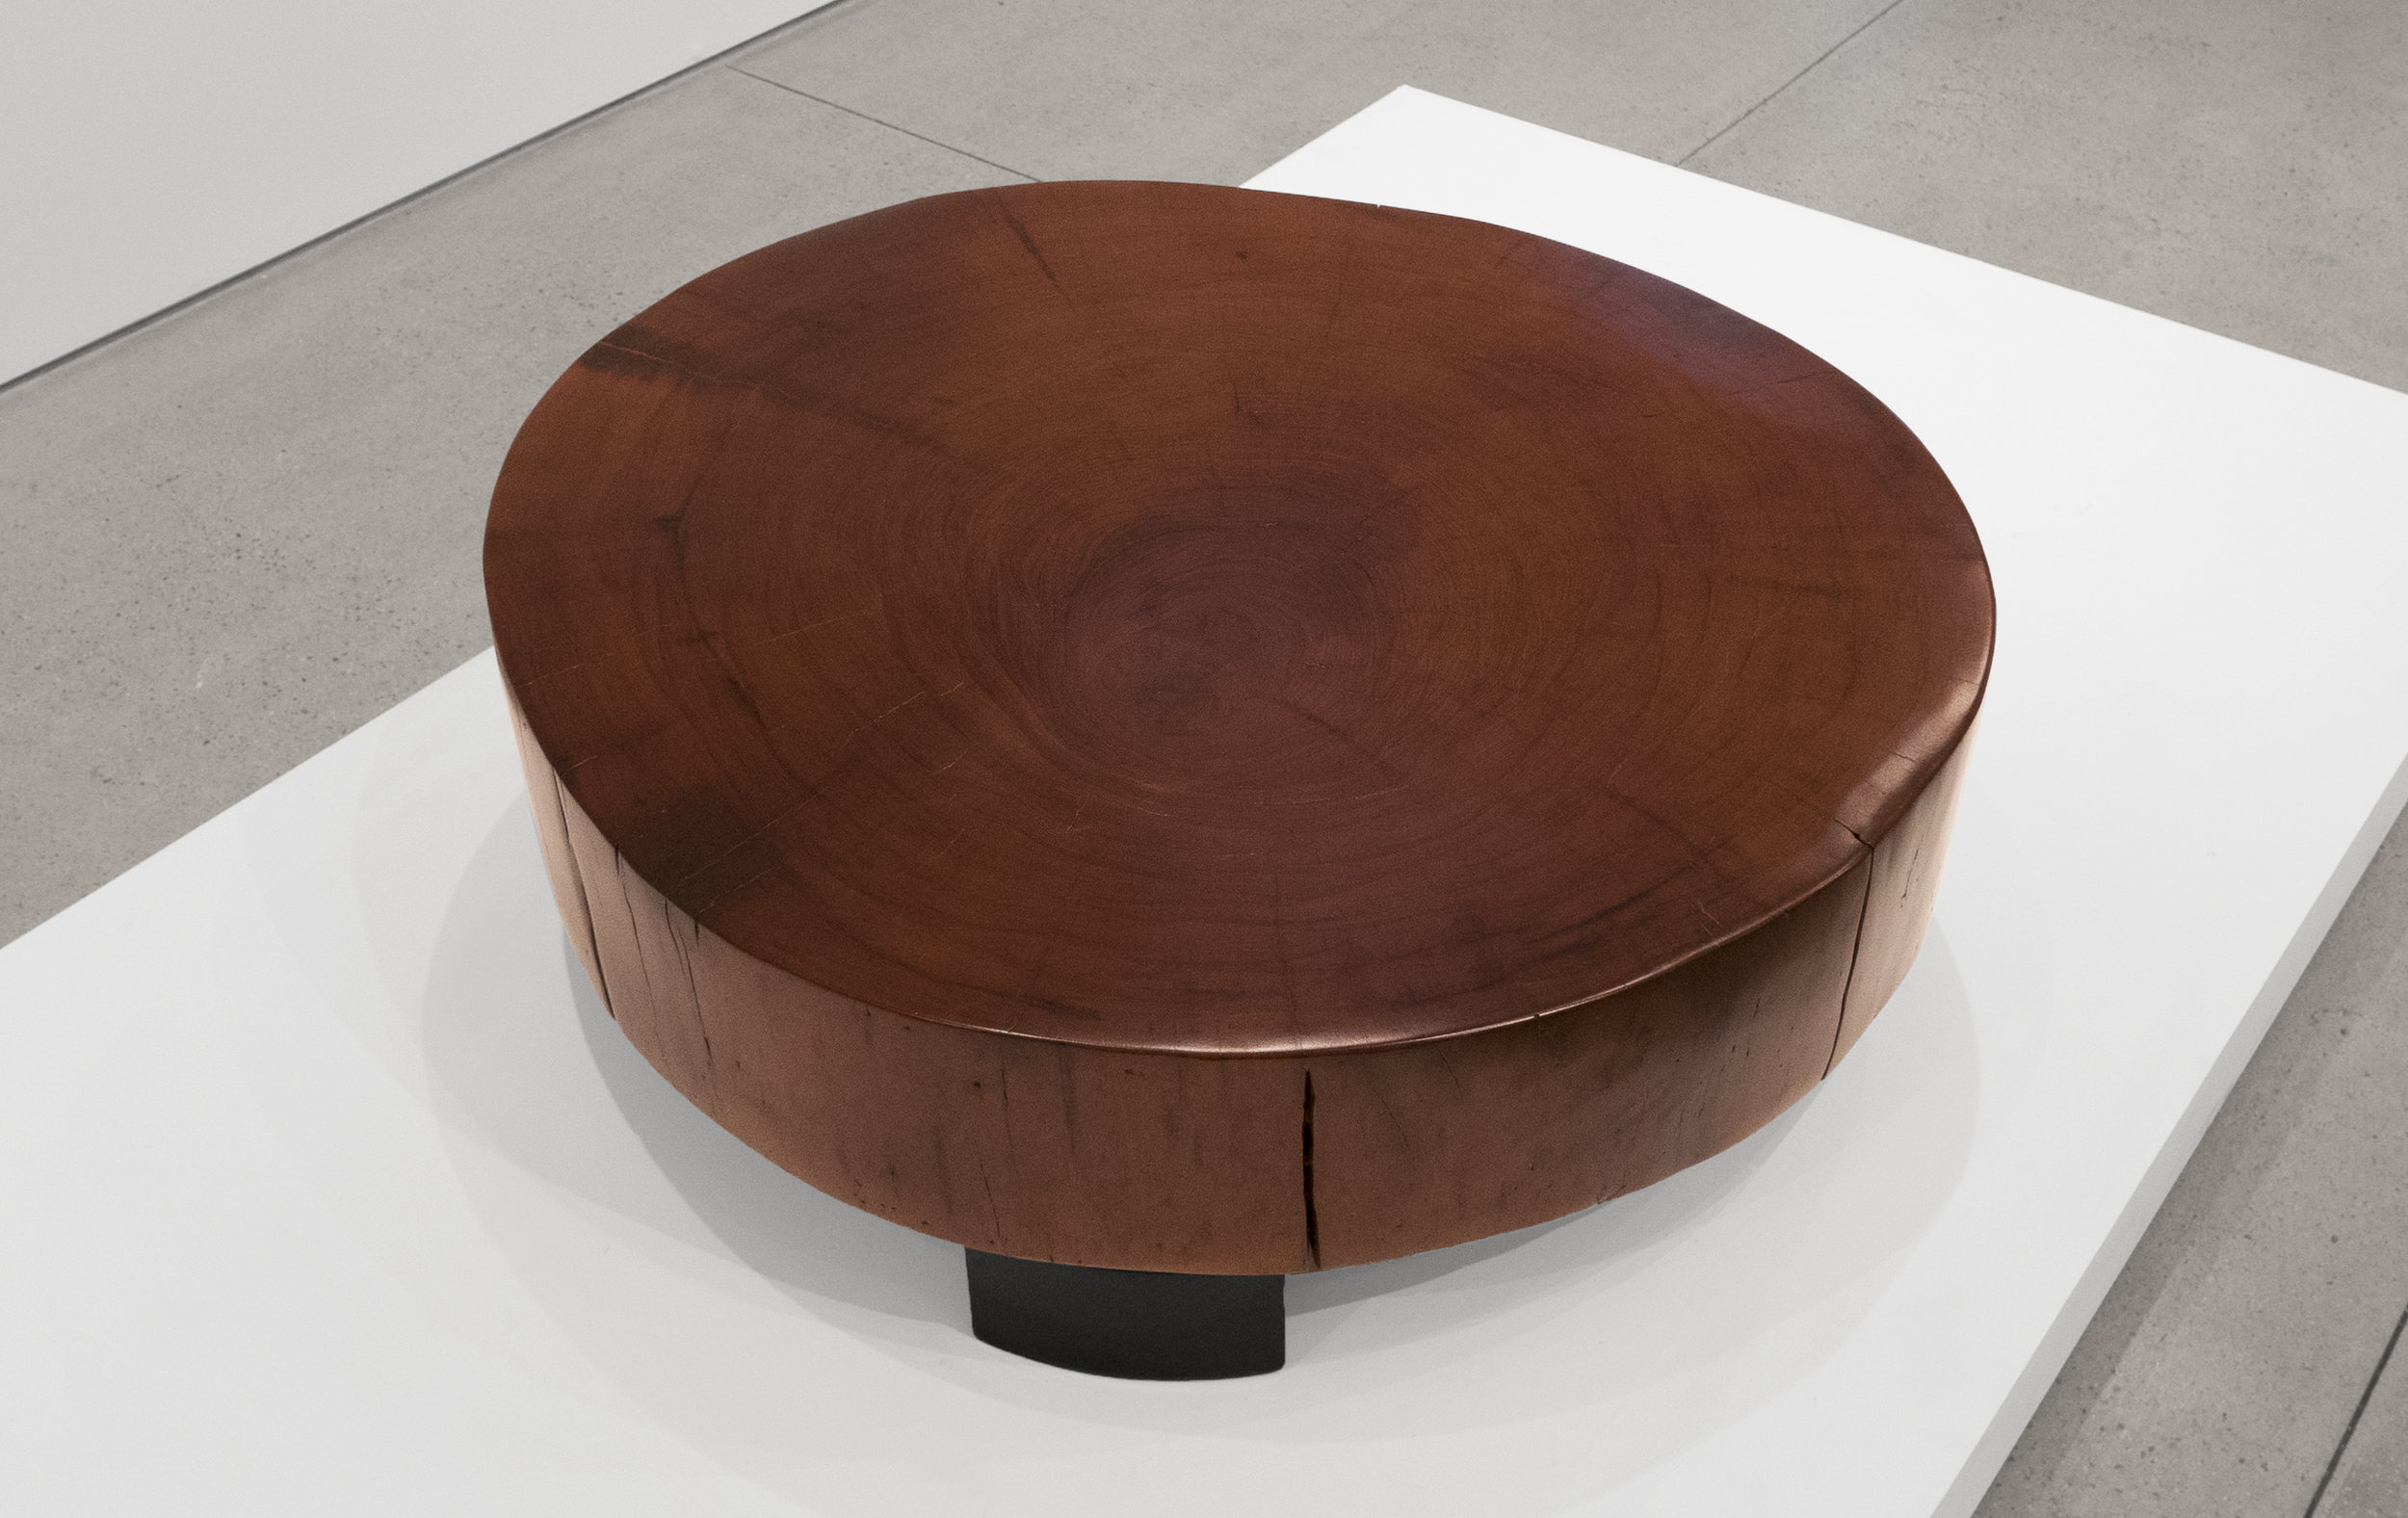 Peroba Woodblock Coffee Table, Solid Peroba, 13 H x 37 W x 34 D inches_4.jpg